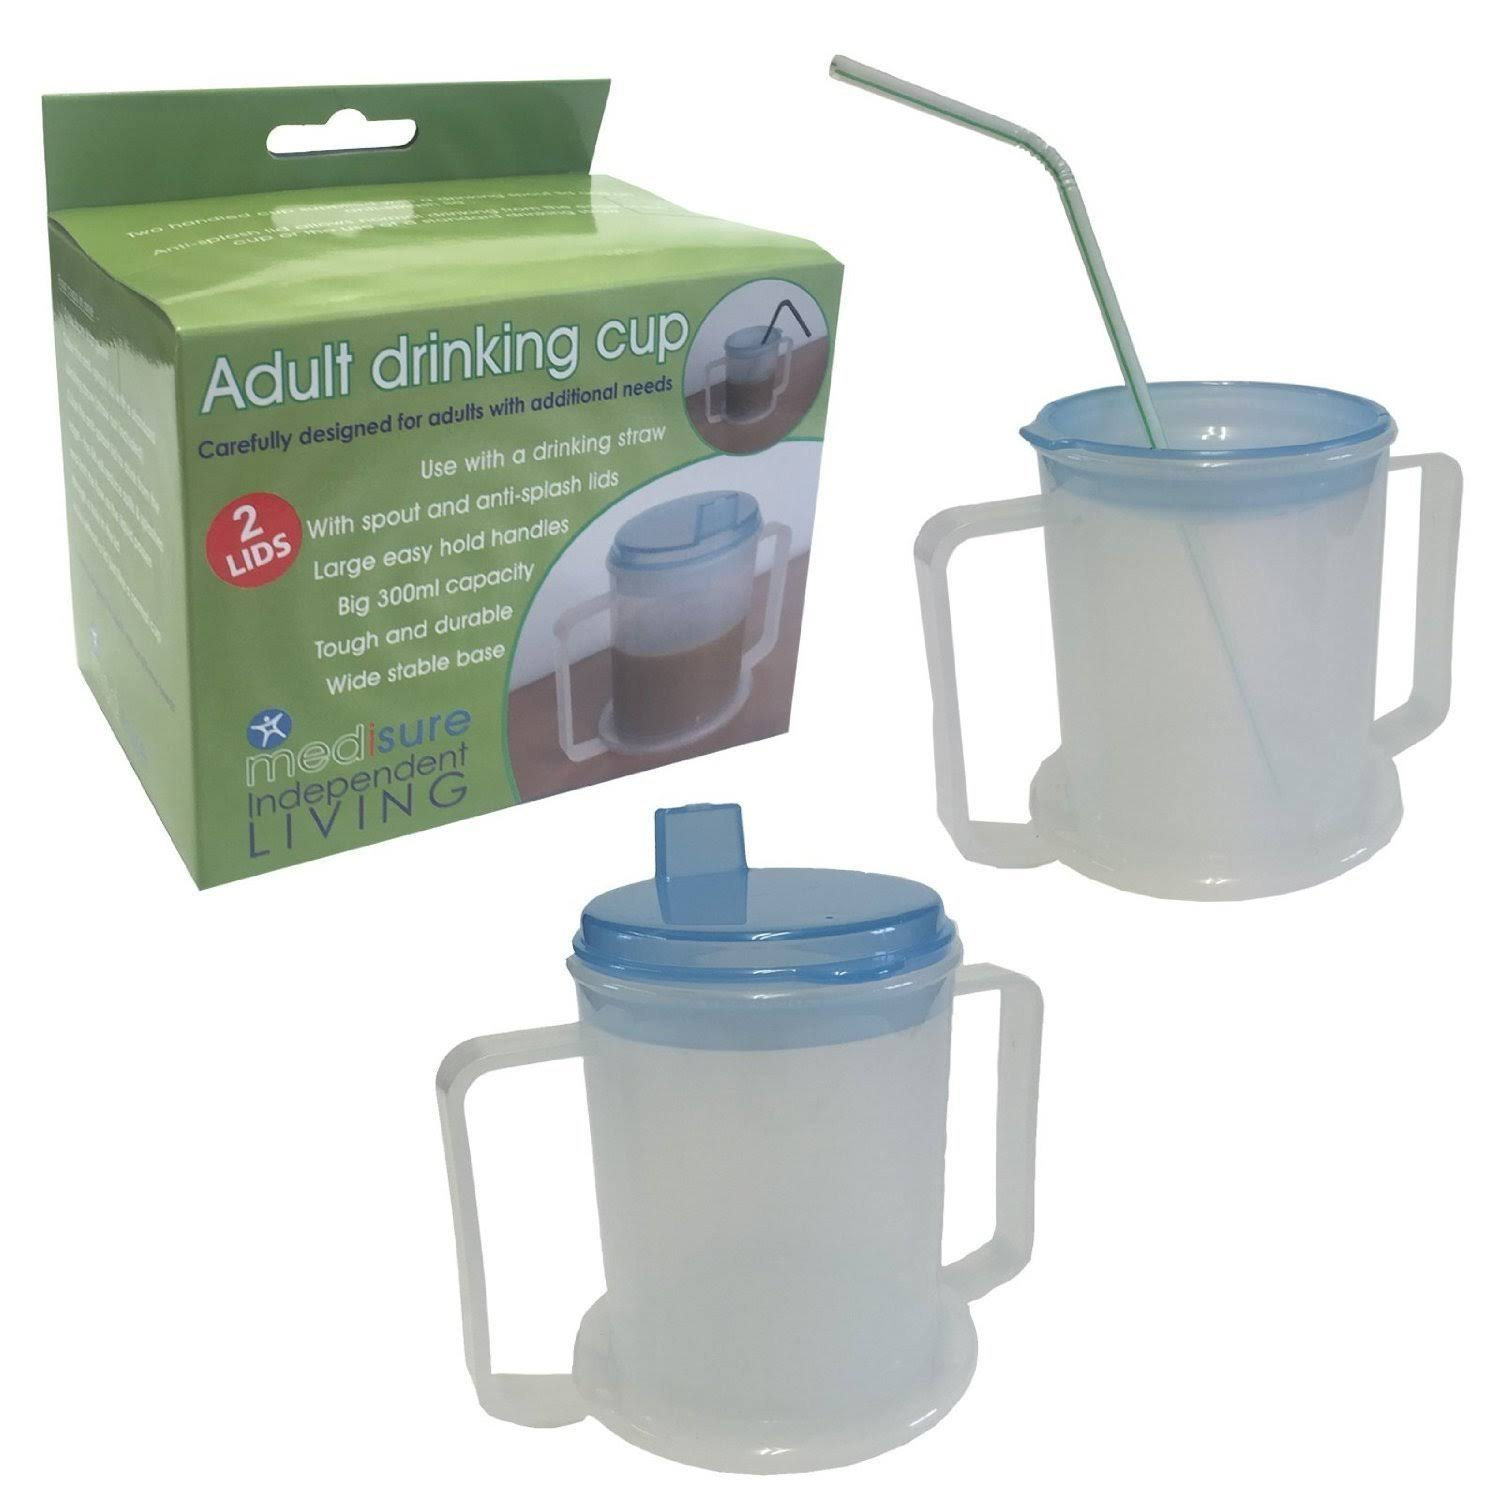 Medisure Adult Drinking Cup